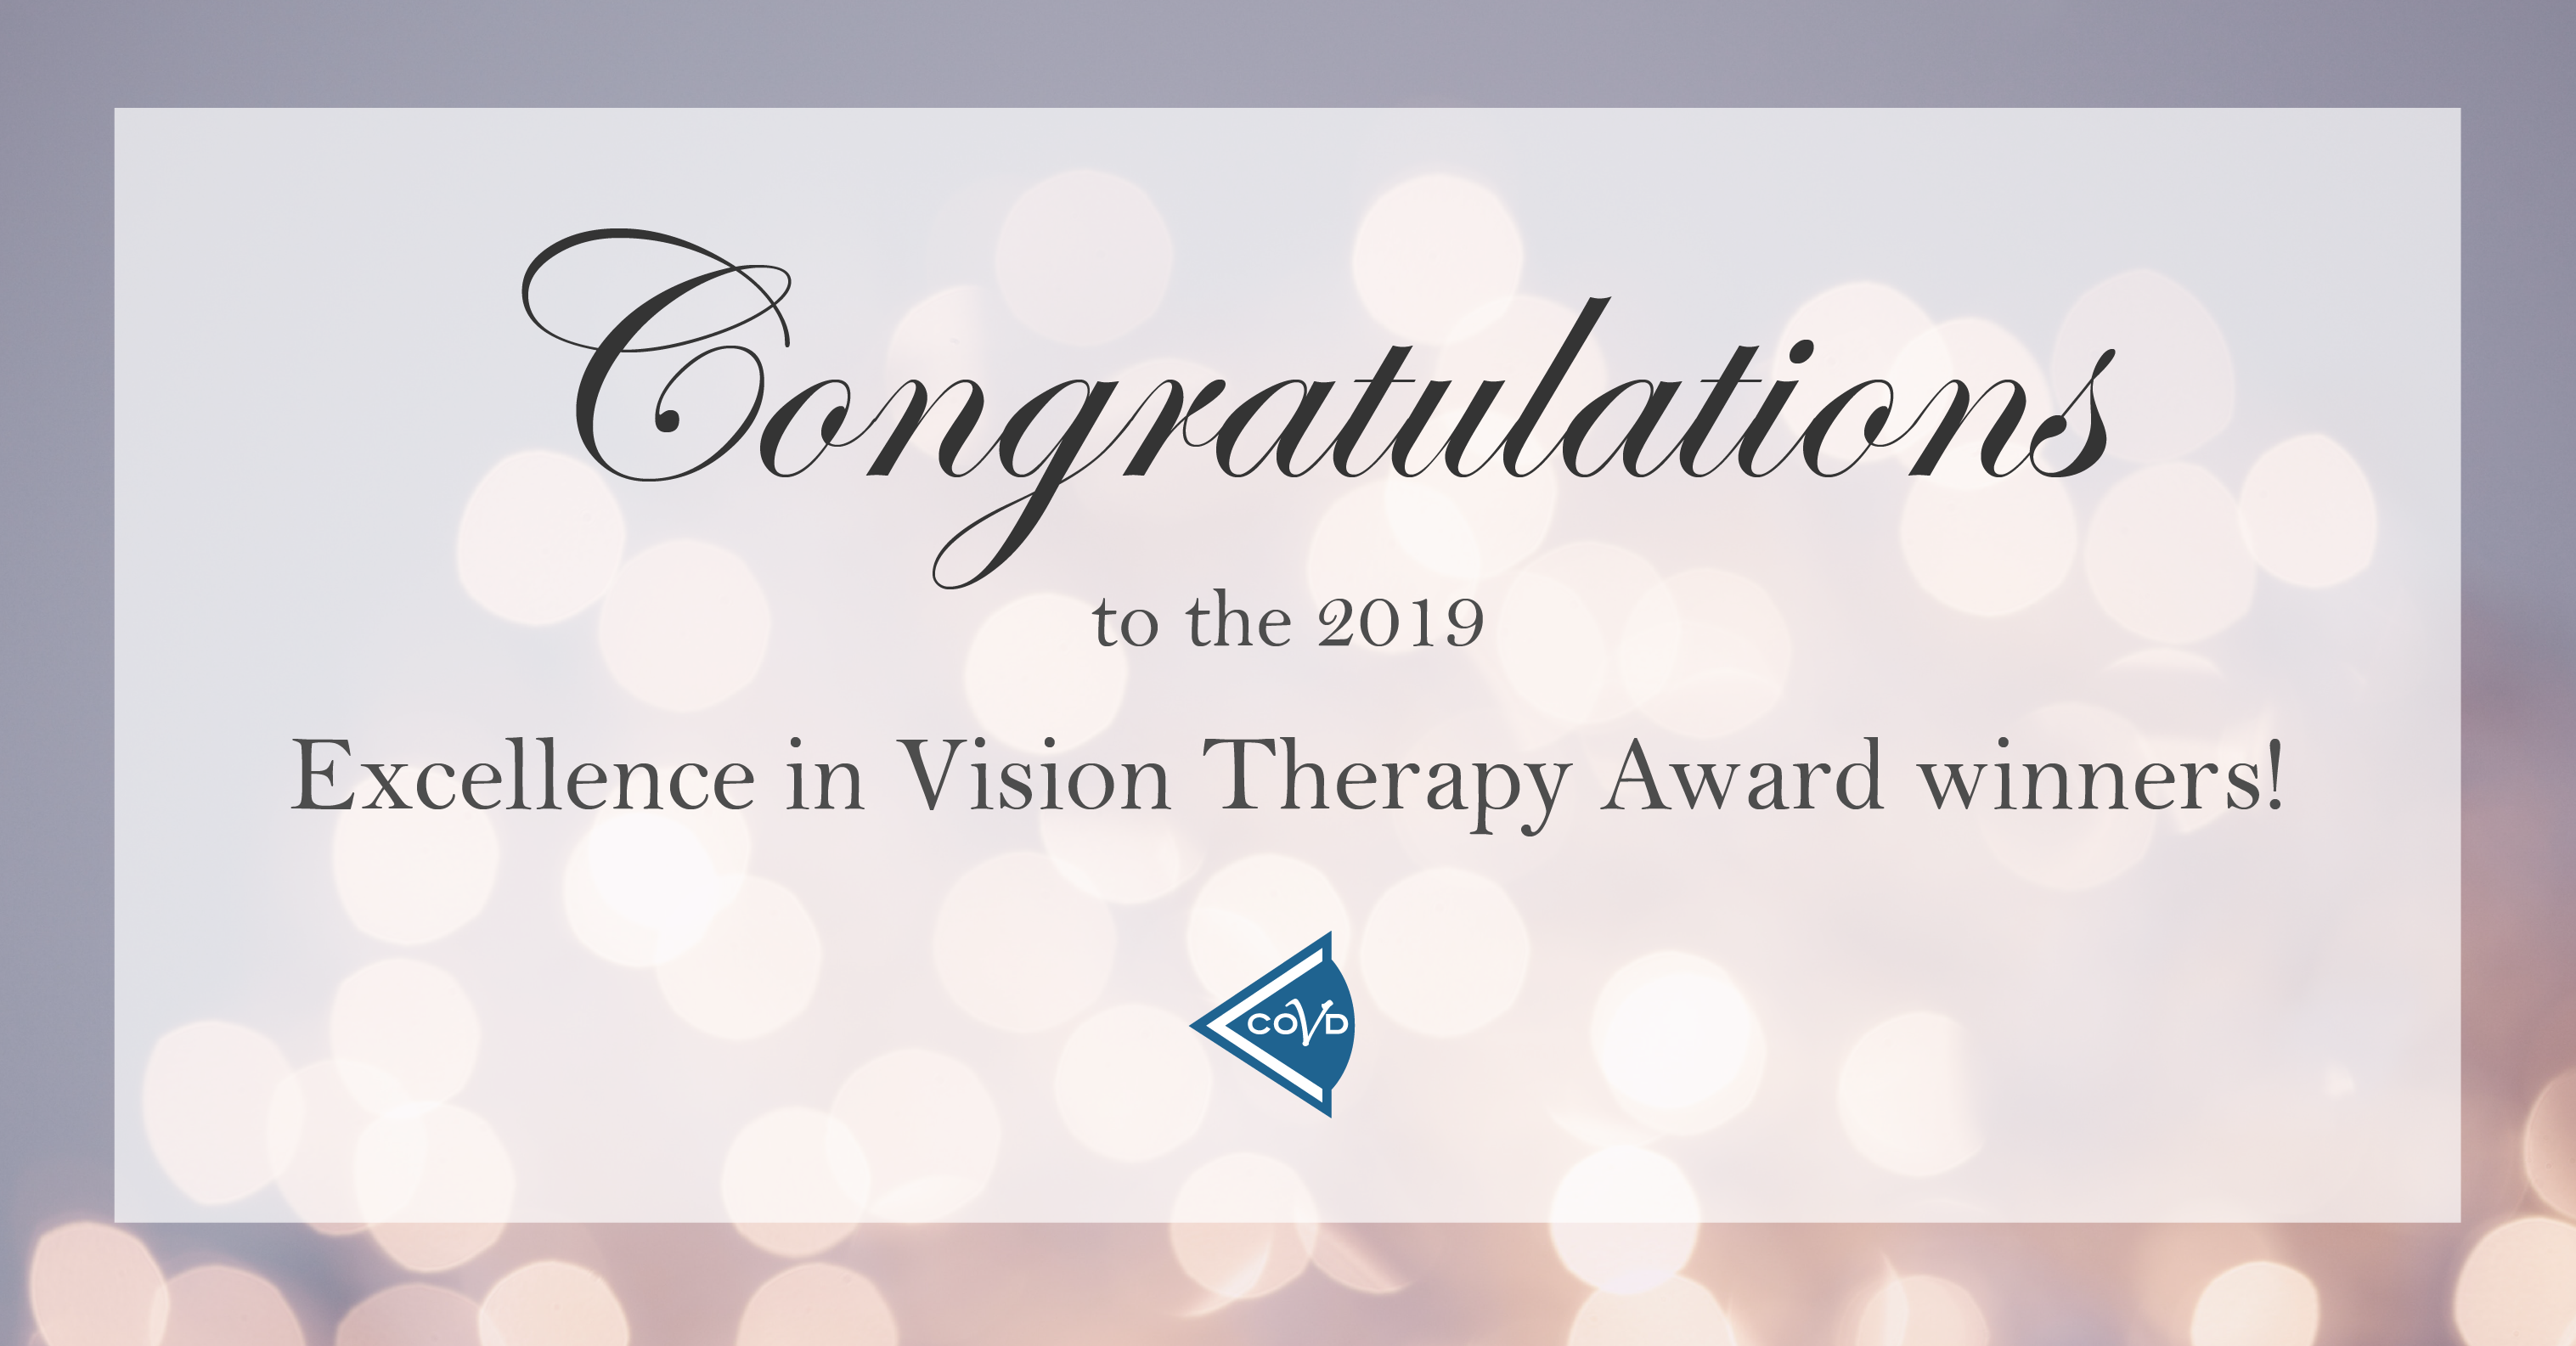 Celebrating Vision Therapy Excellence in this year's graduating optometrists